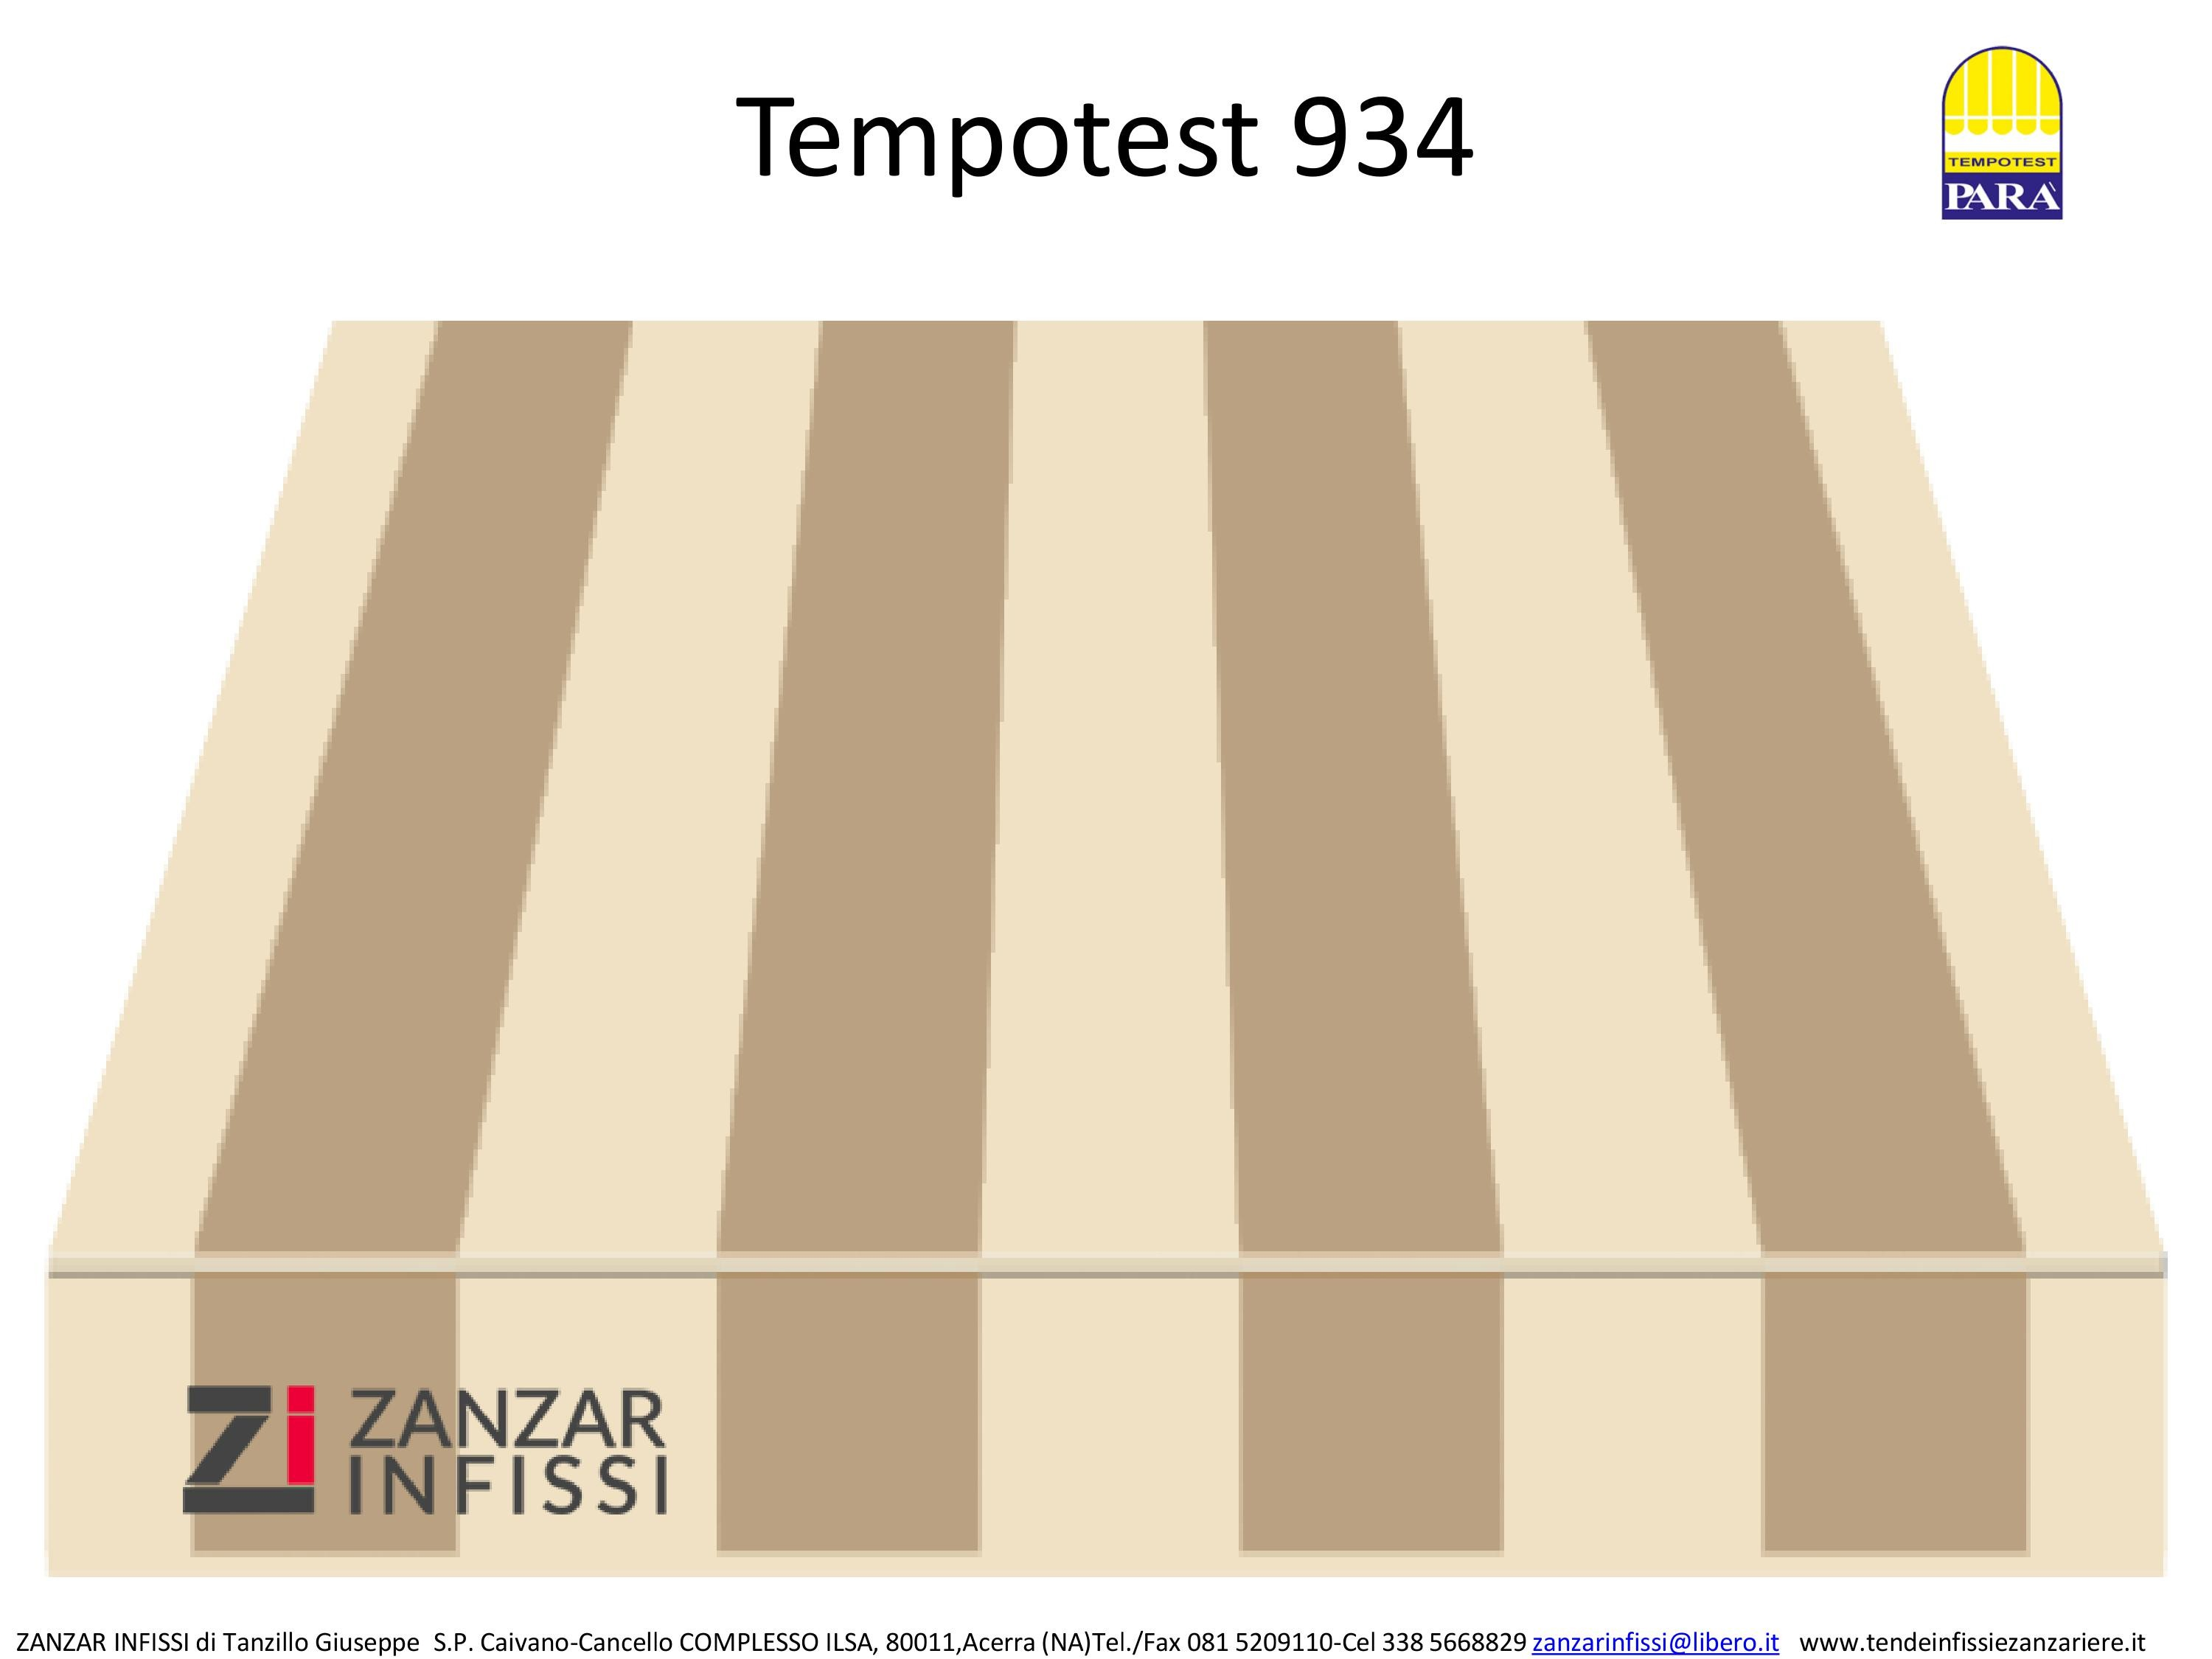 Tempotest 934